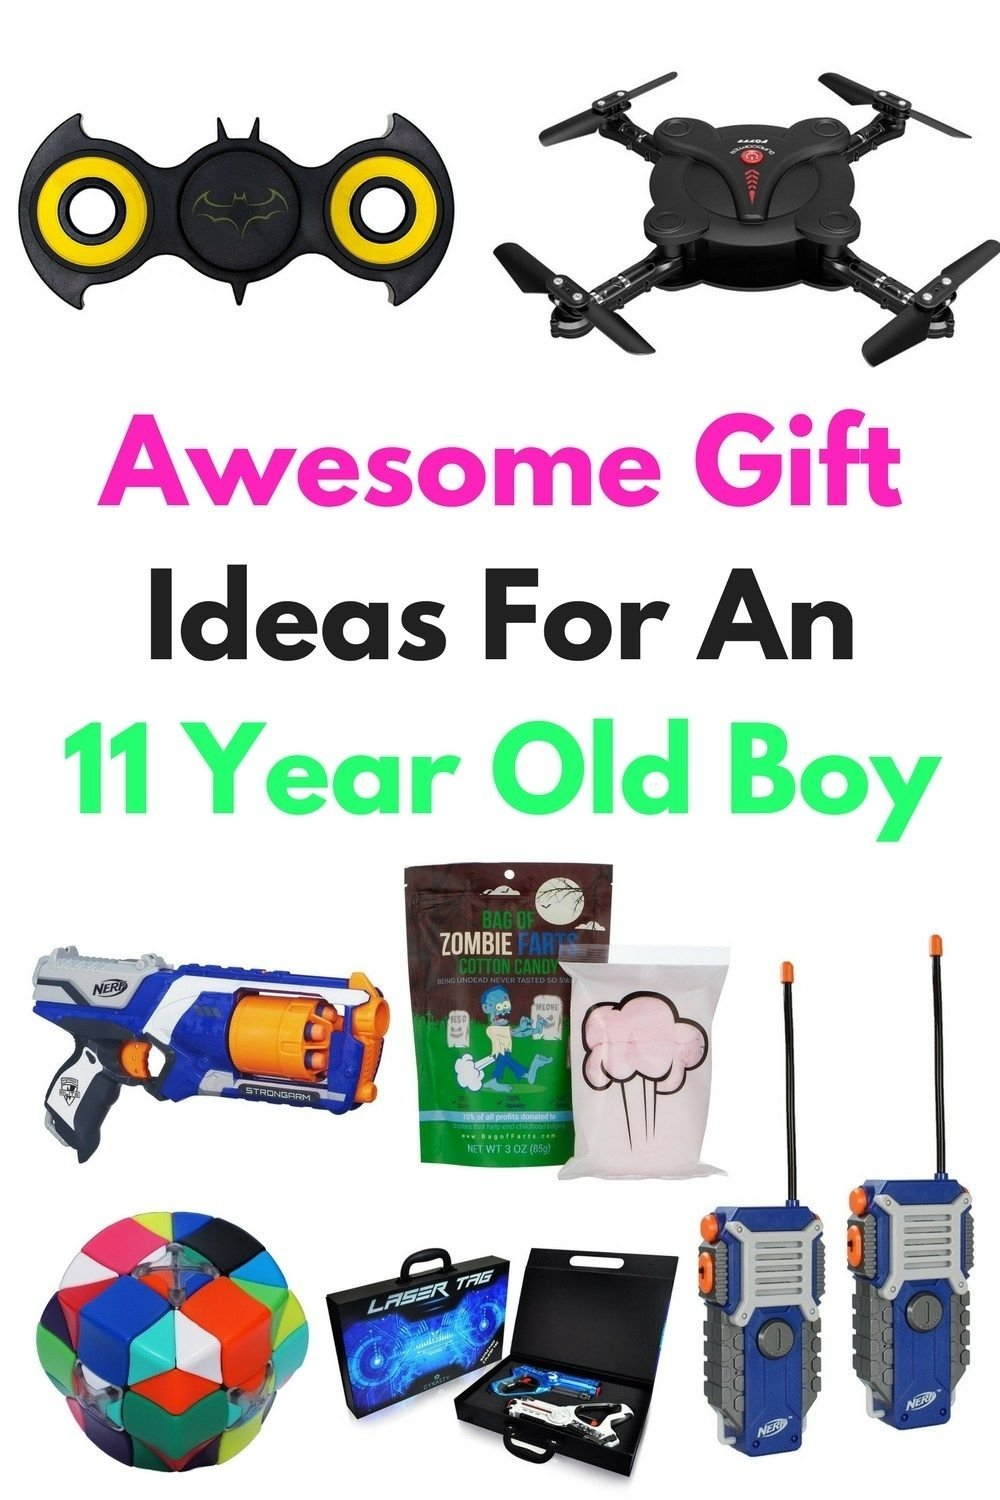 10 Fashionable 11 Year Old Boy Gift Ideas awesome gift ideas for an 11 year old boy awesome gifts easter 8 2020